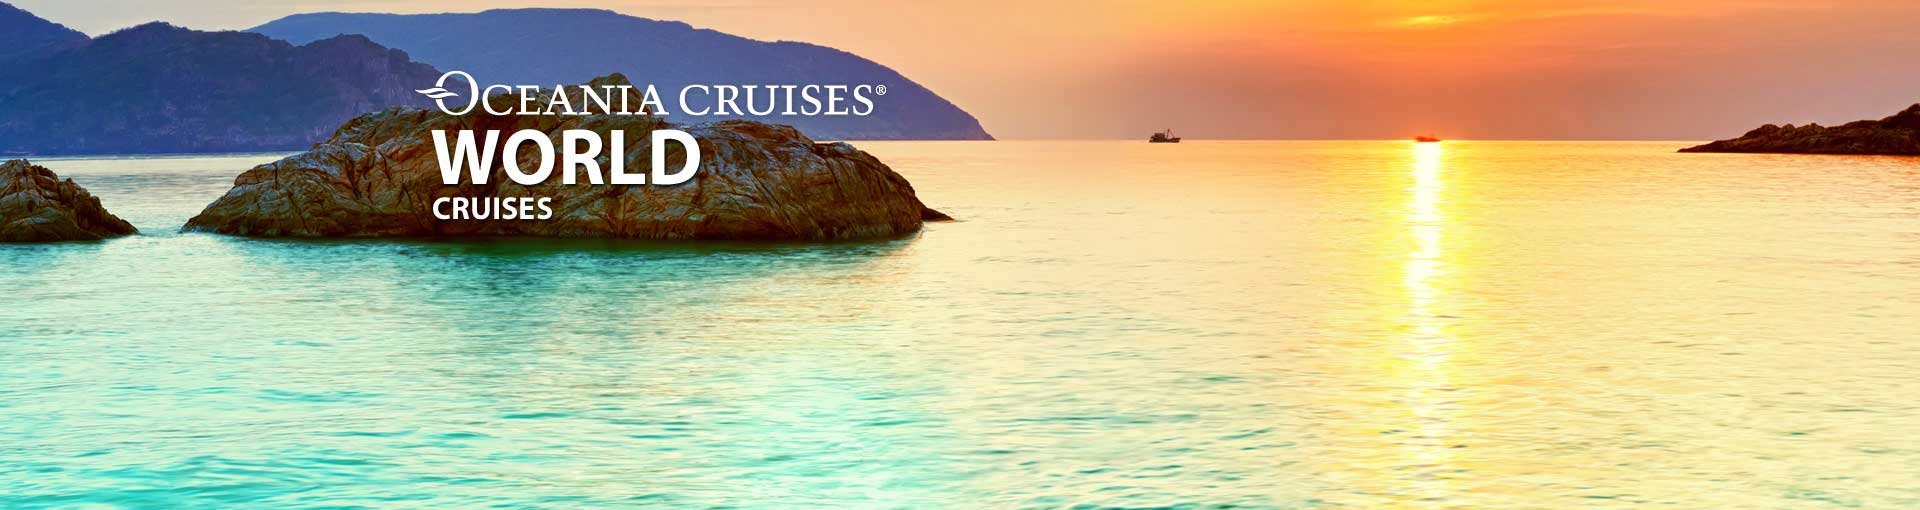 Already Booked Finalize Your Cruise Reservation with